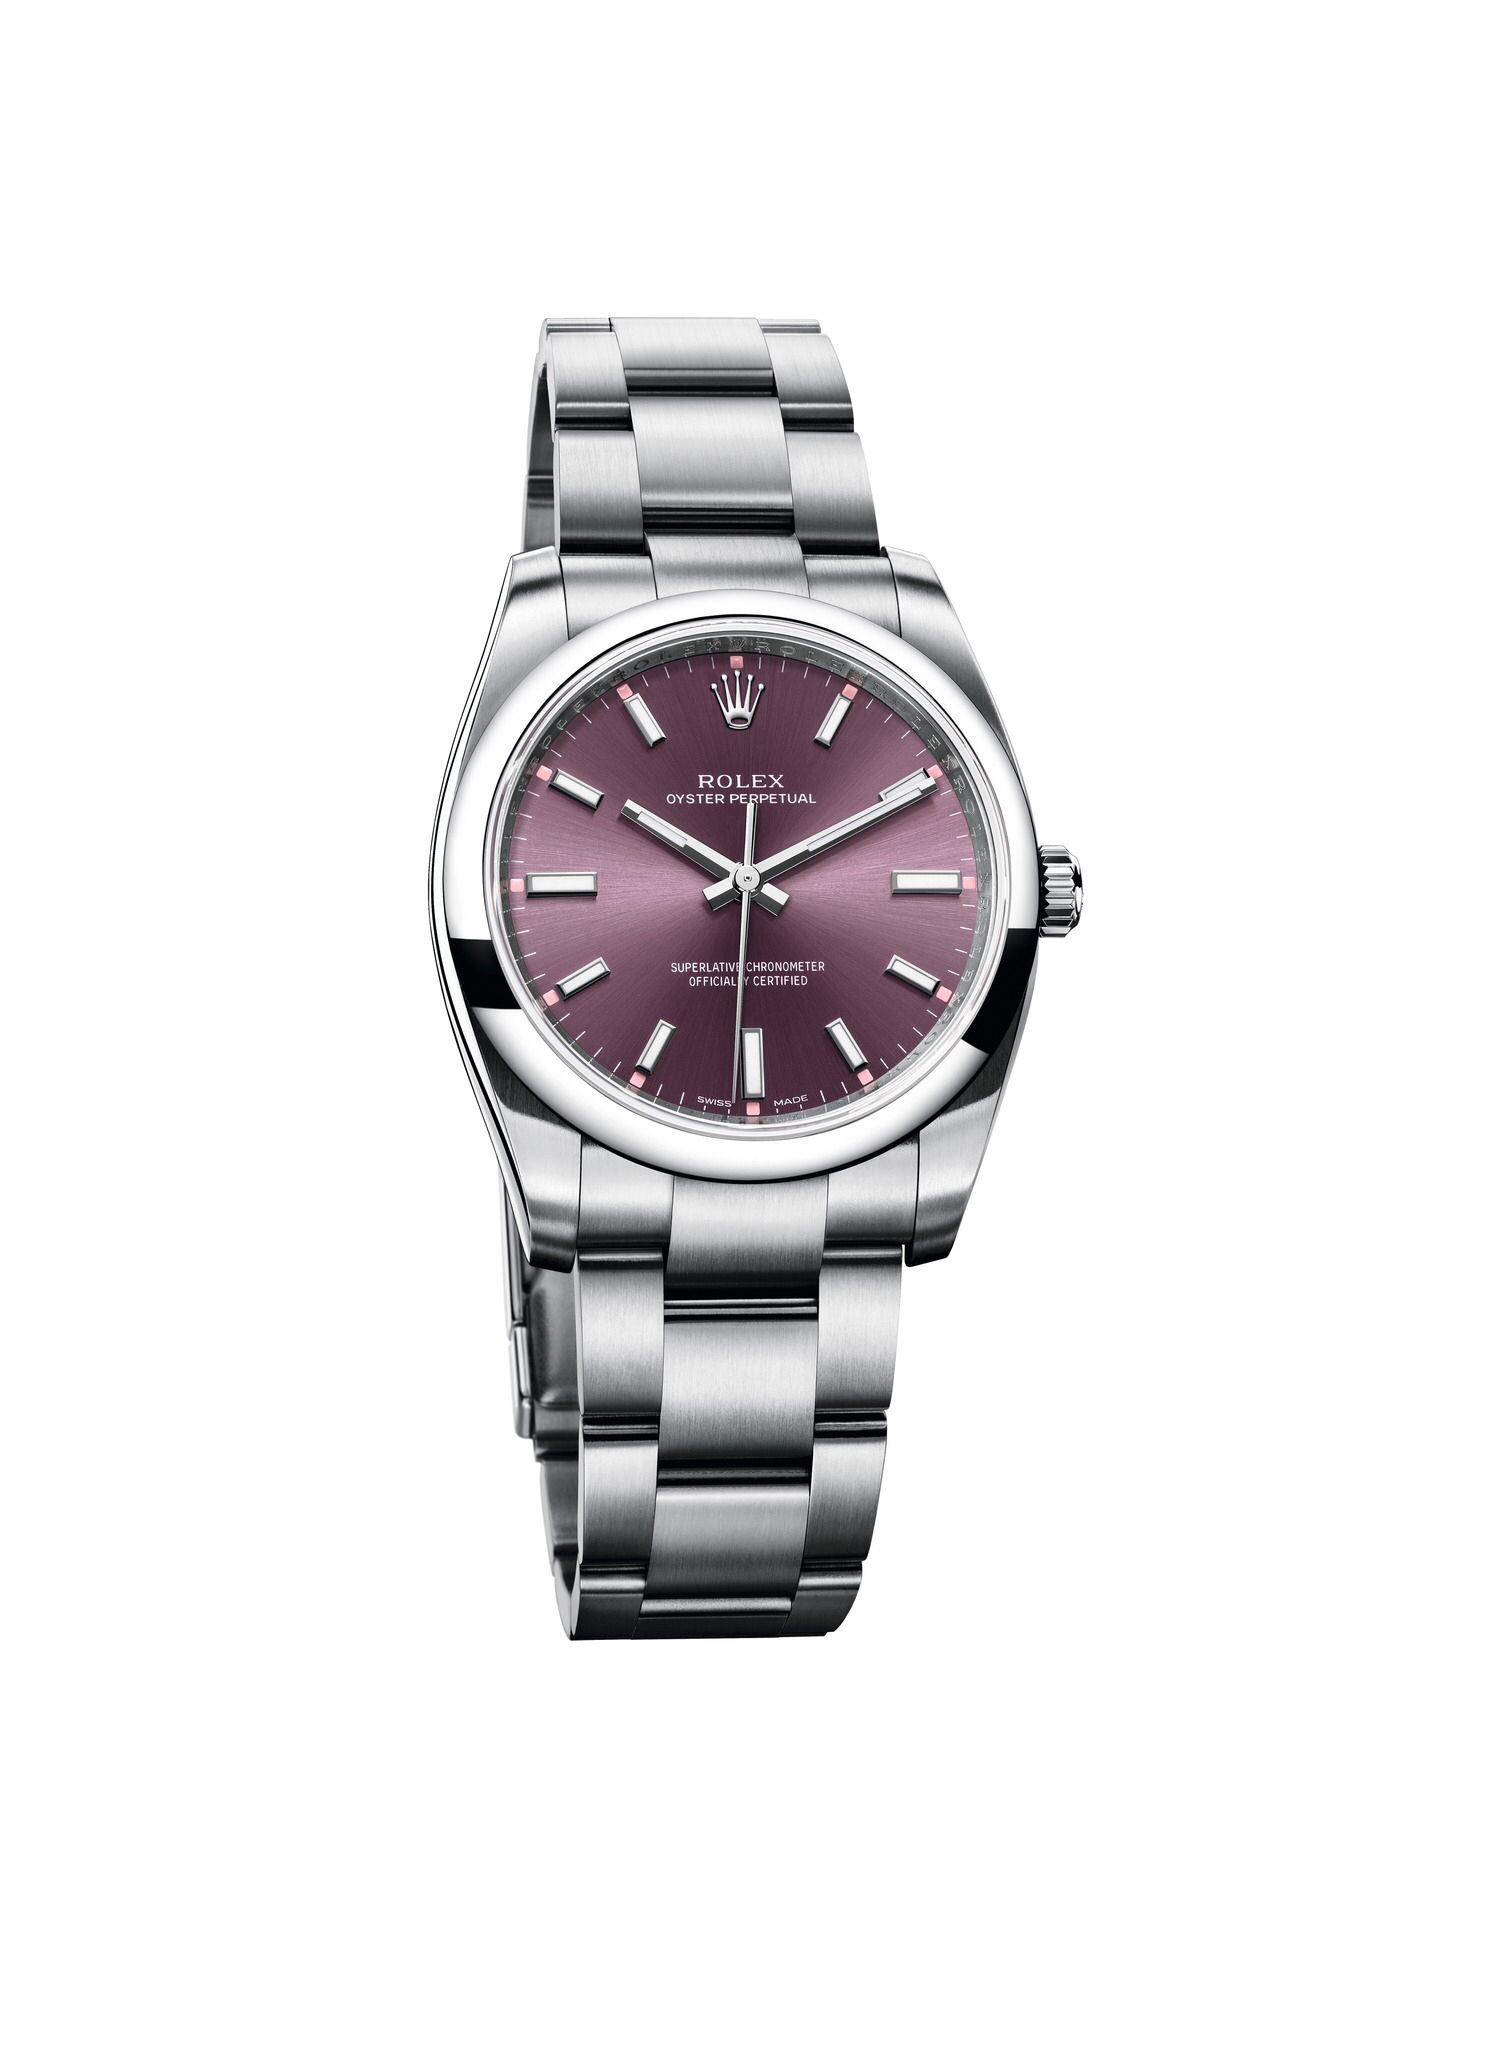 Oyster Perpetual 34mm Steel Rolex watches women, Rolex